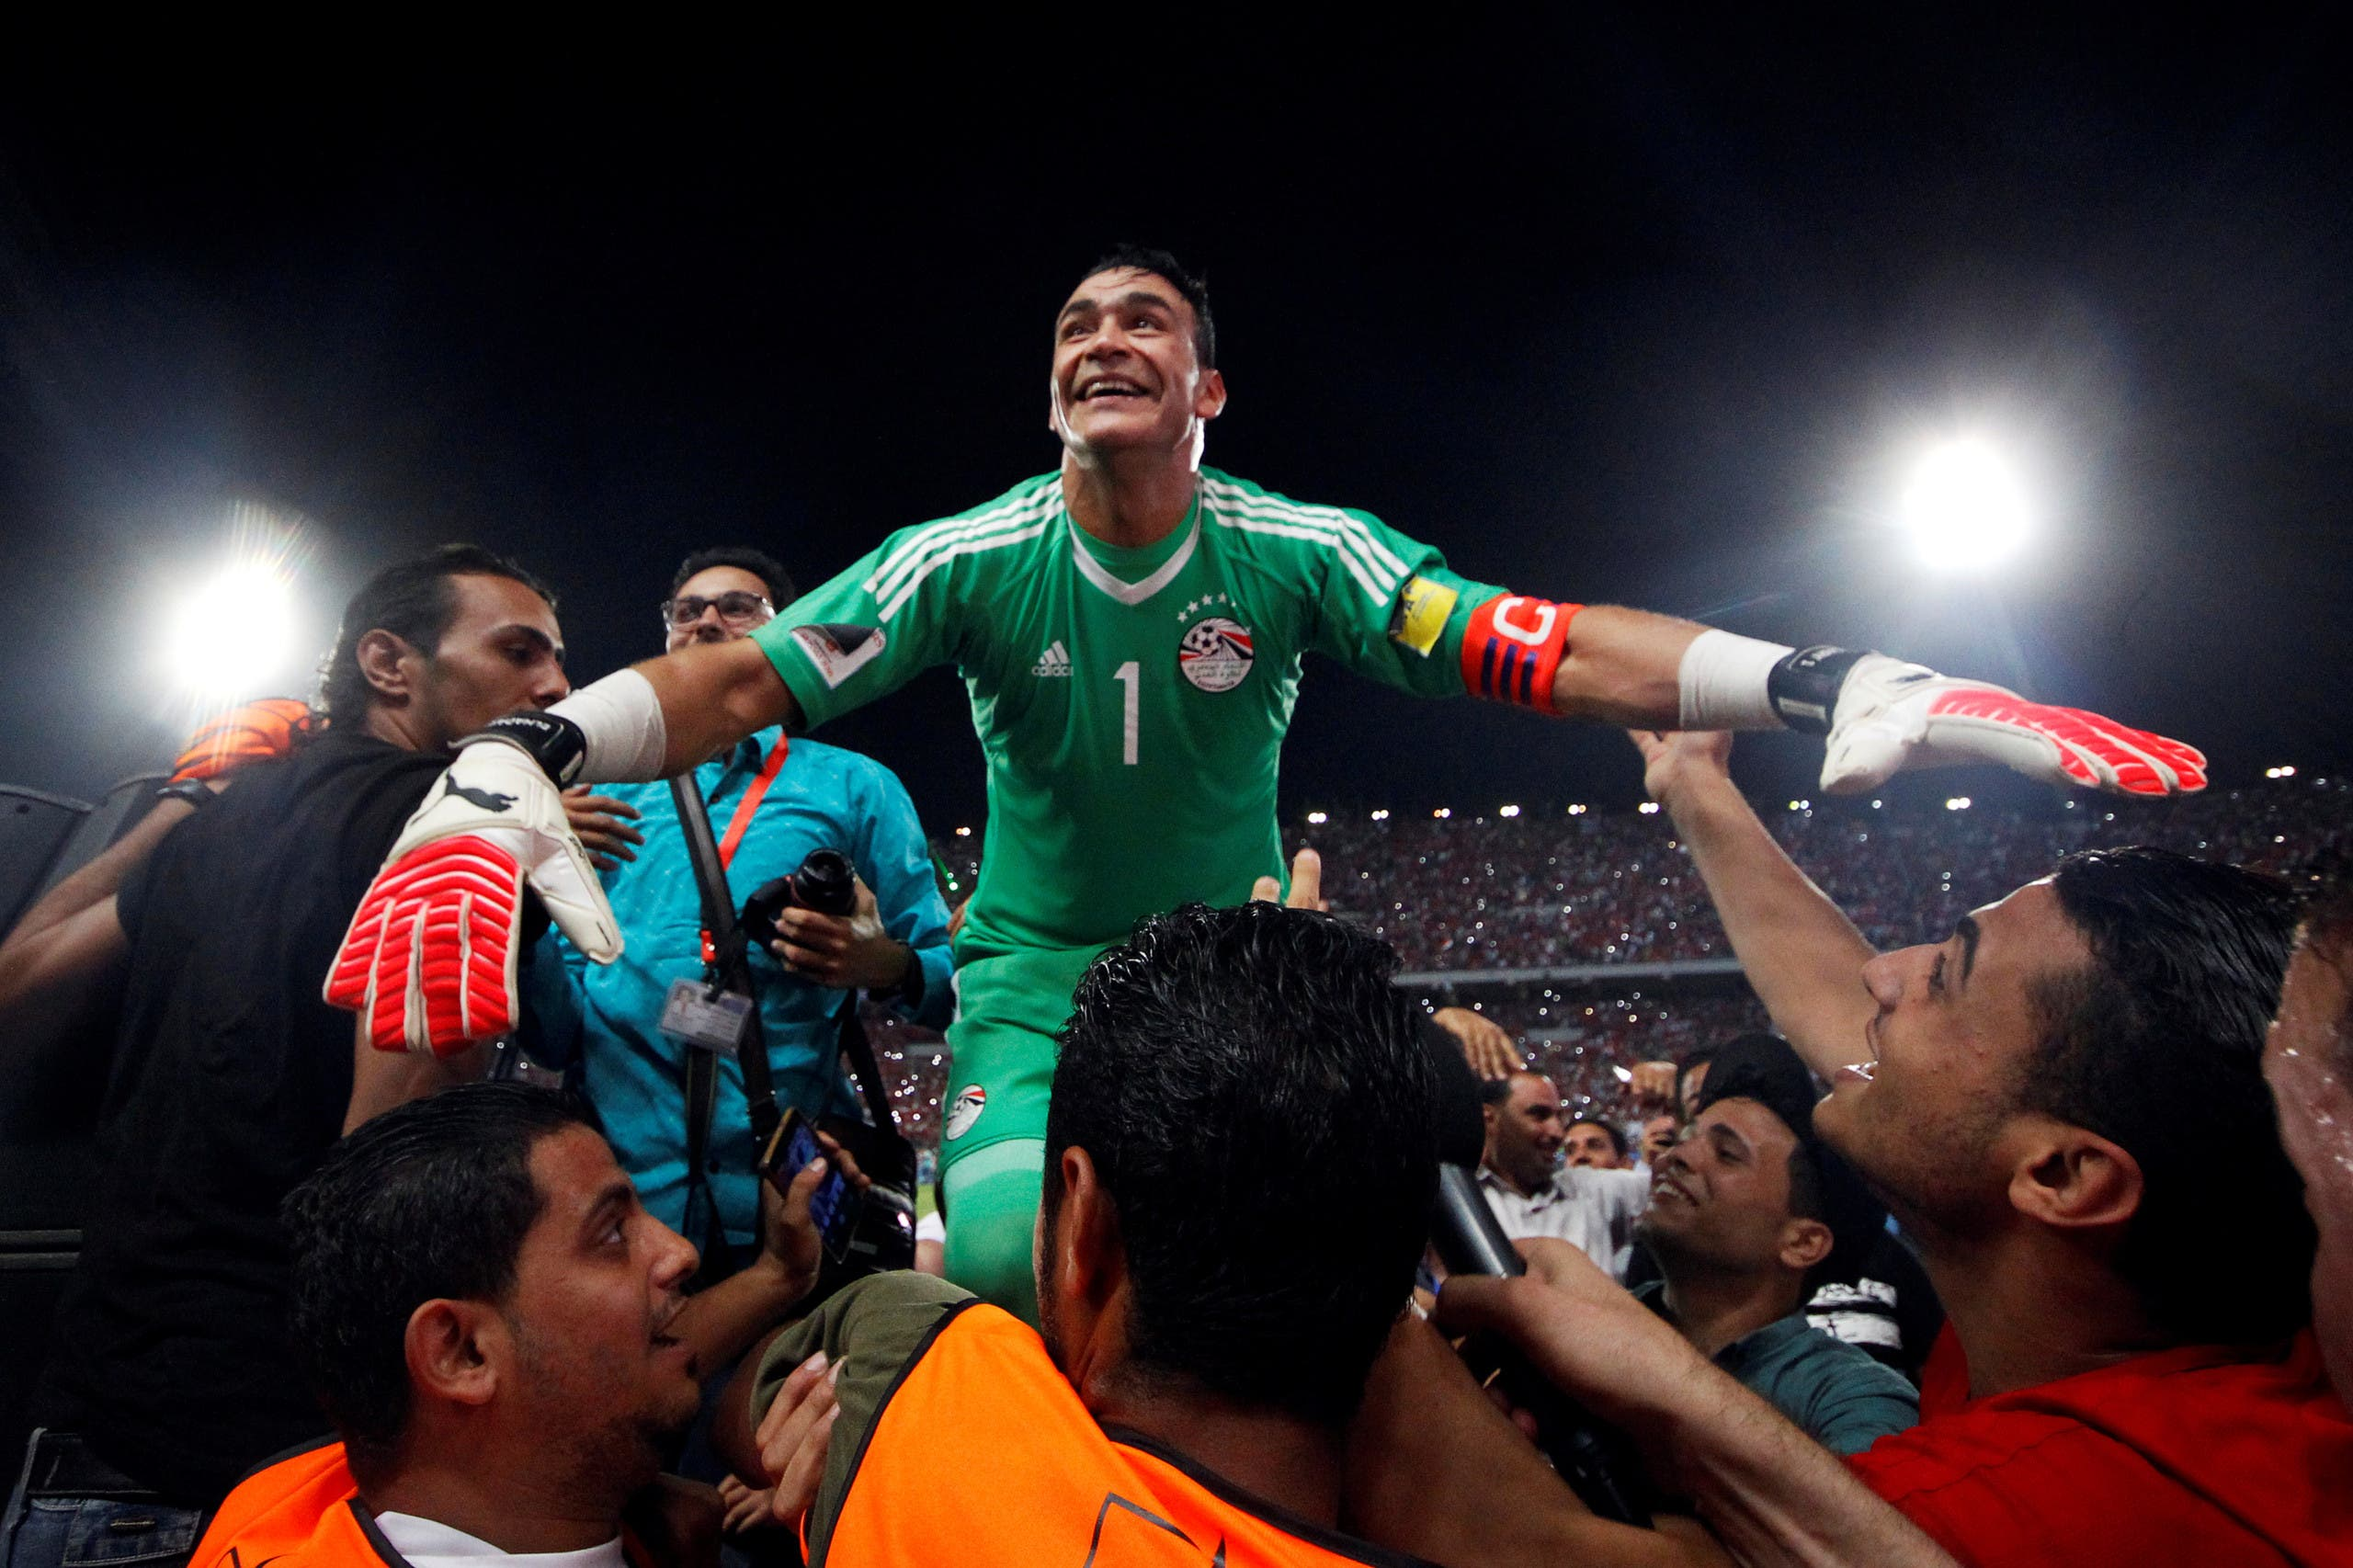 hadary reuters